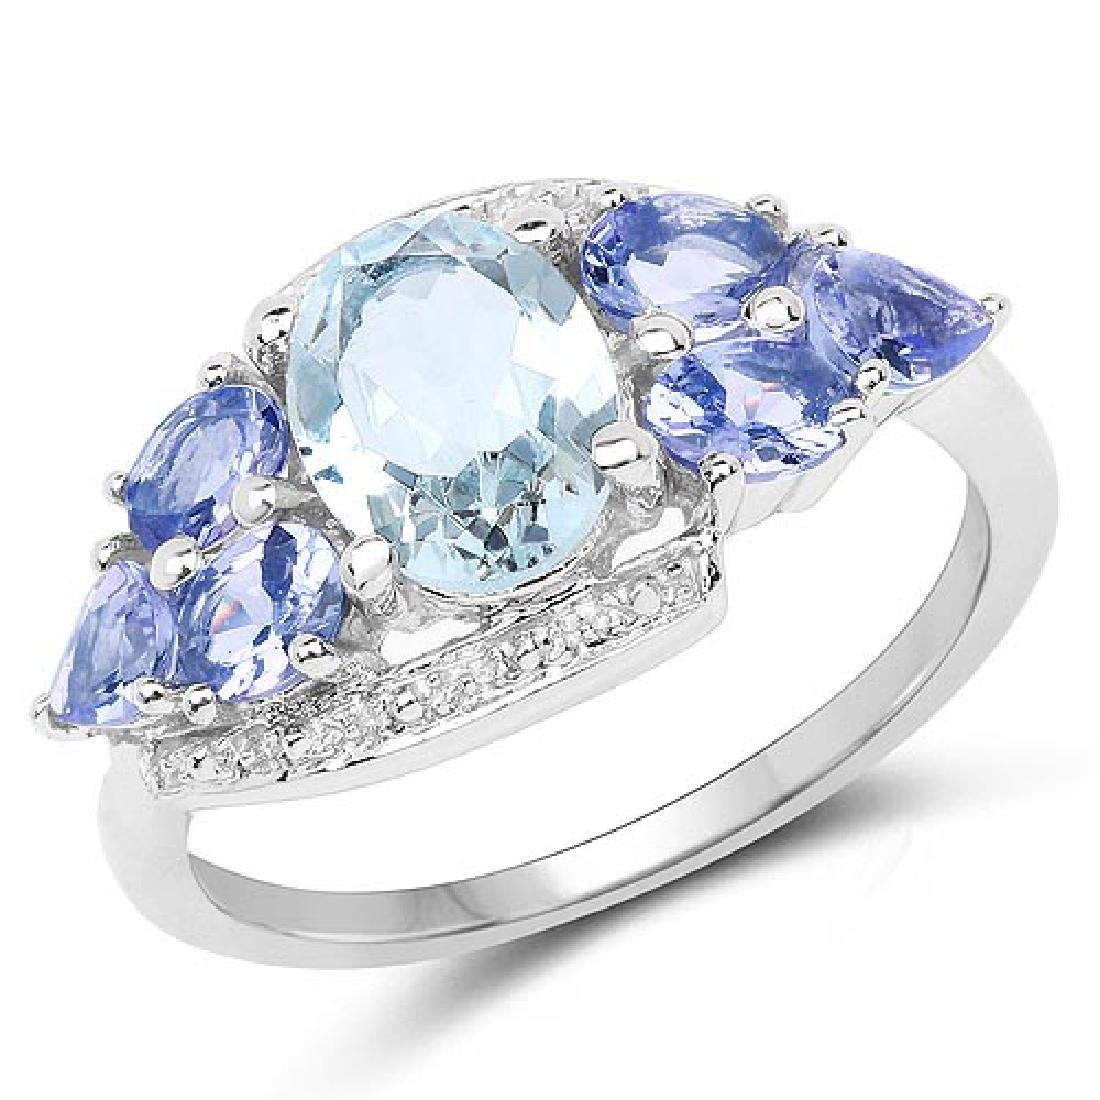 2.11 Carat Genuine Aquamarine and Tanzanite .925 Sterli